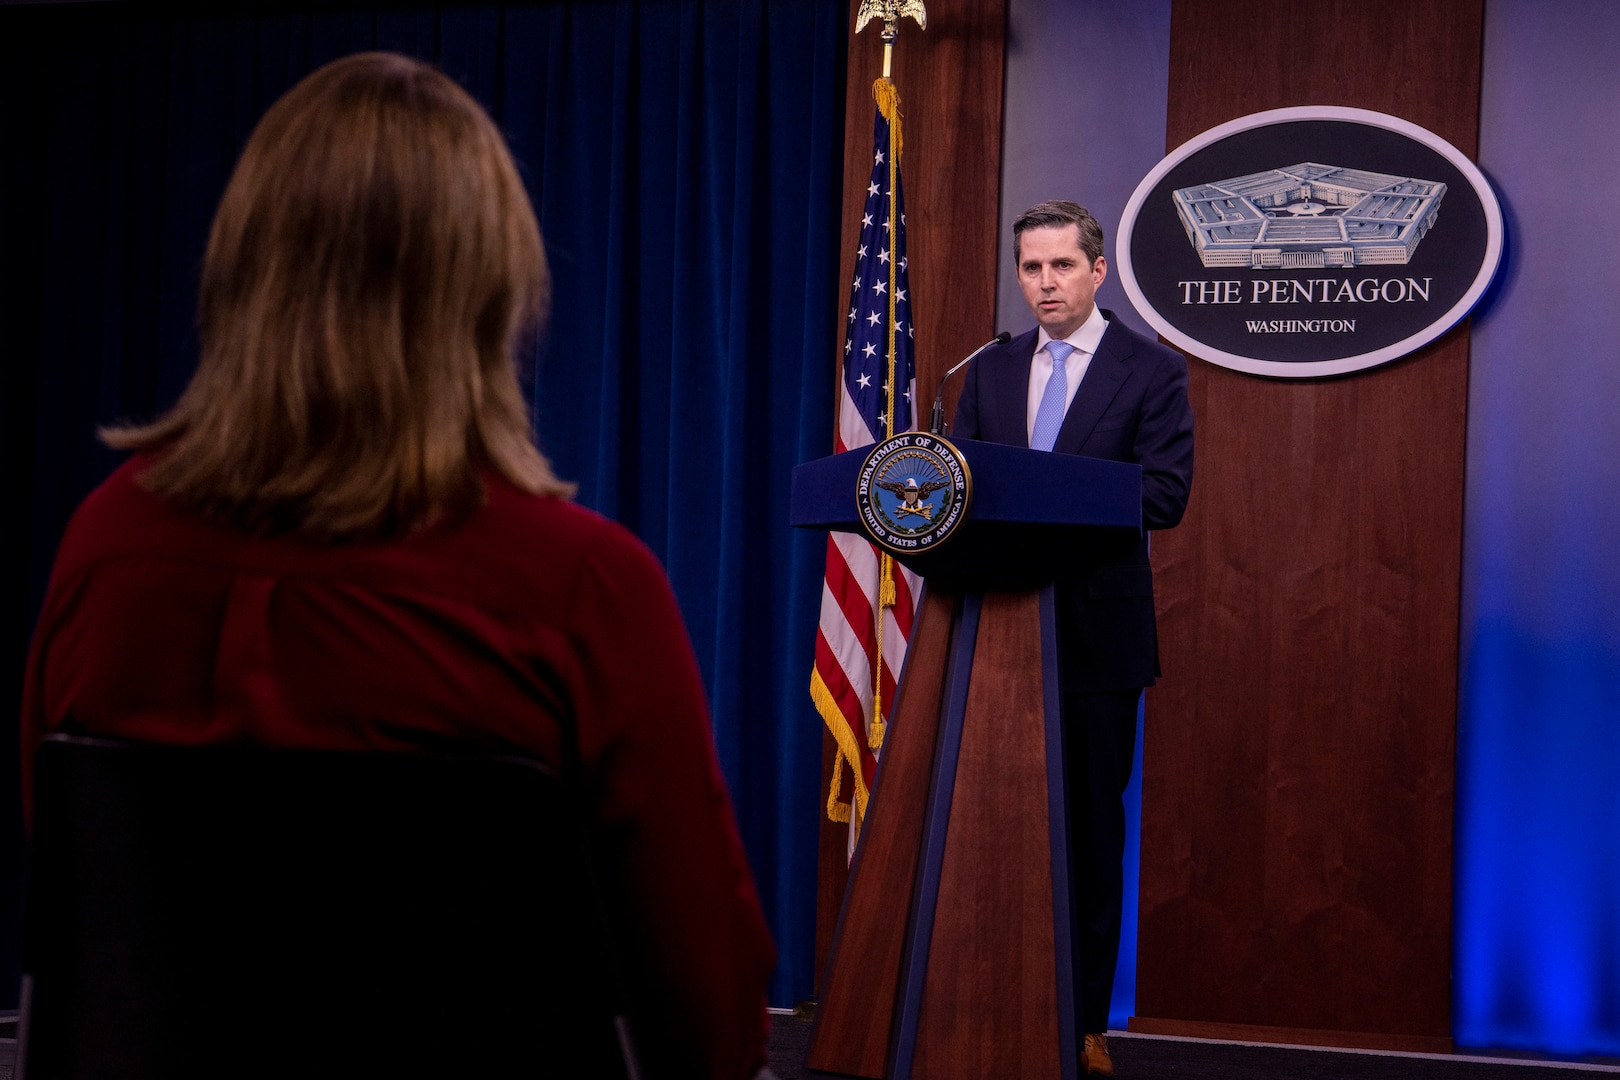 Jonathan Rath Hoffman, assistant to the secretary of defense for public affairs, holds a news conference on COVID-19 efforts at the Pentagon, April 24, 2020.